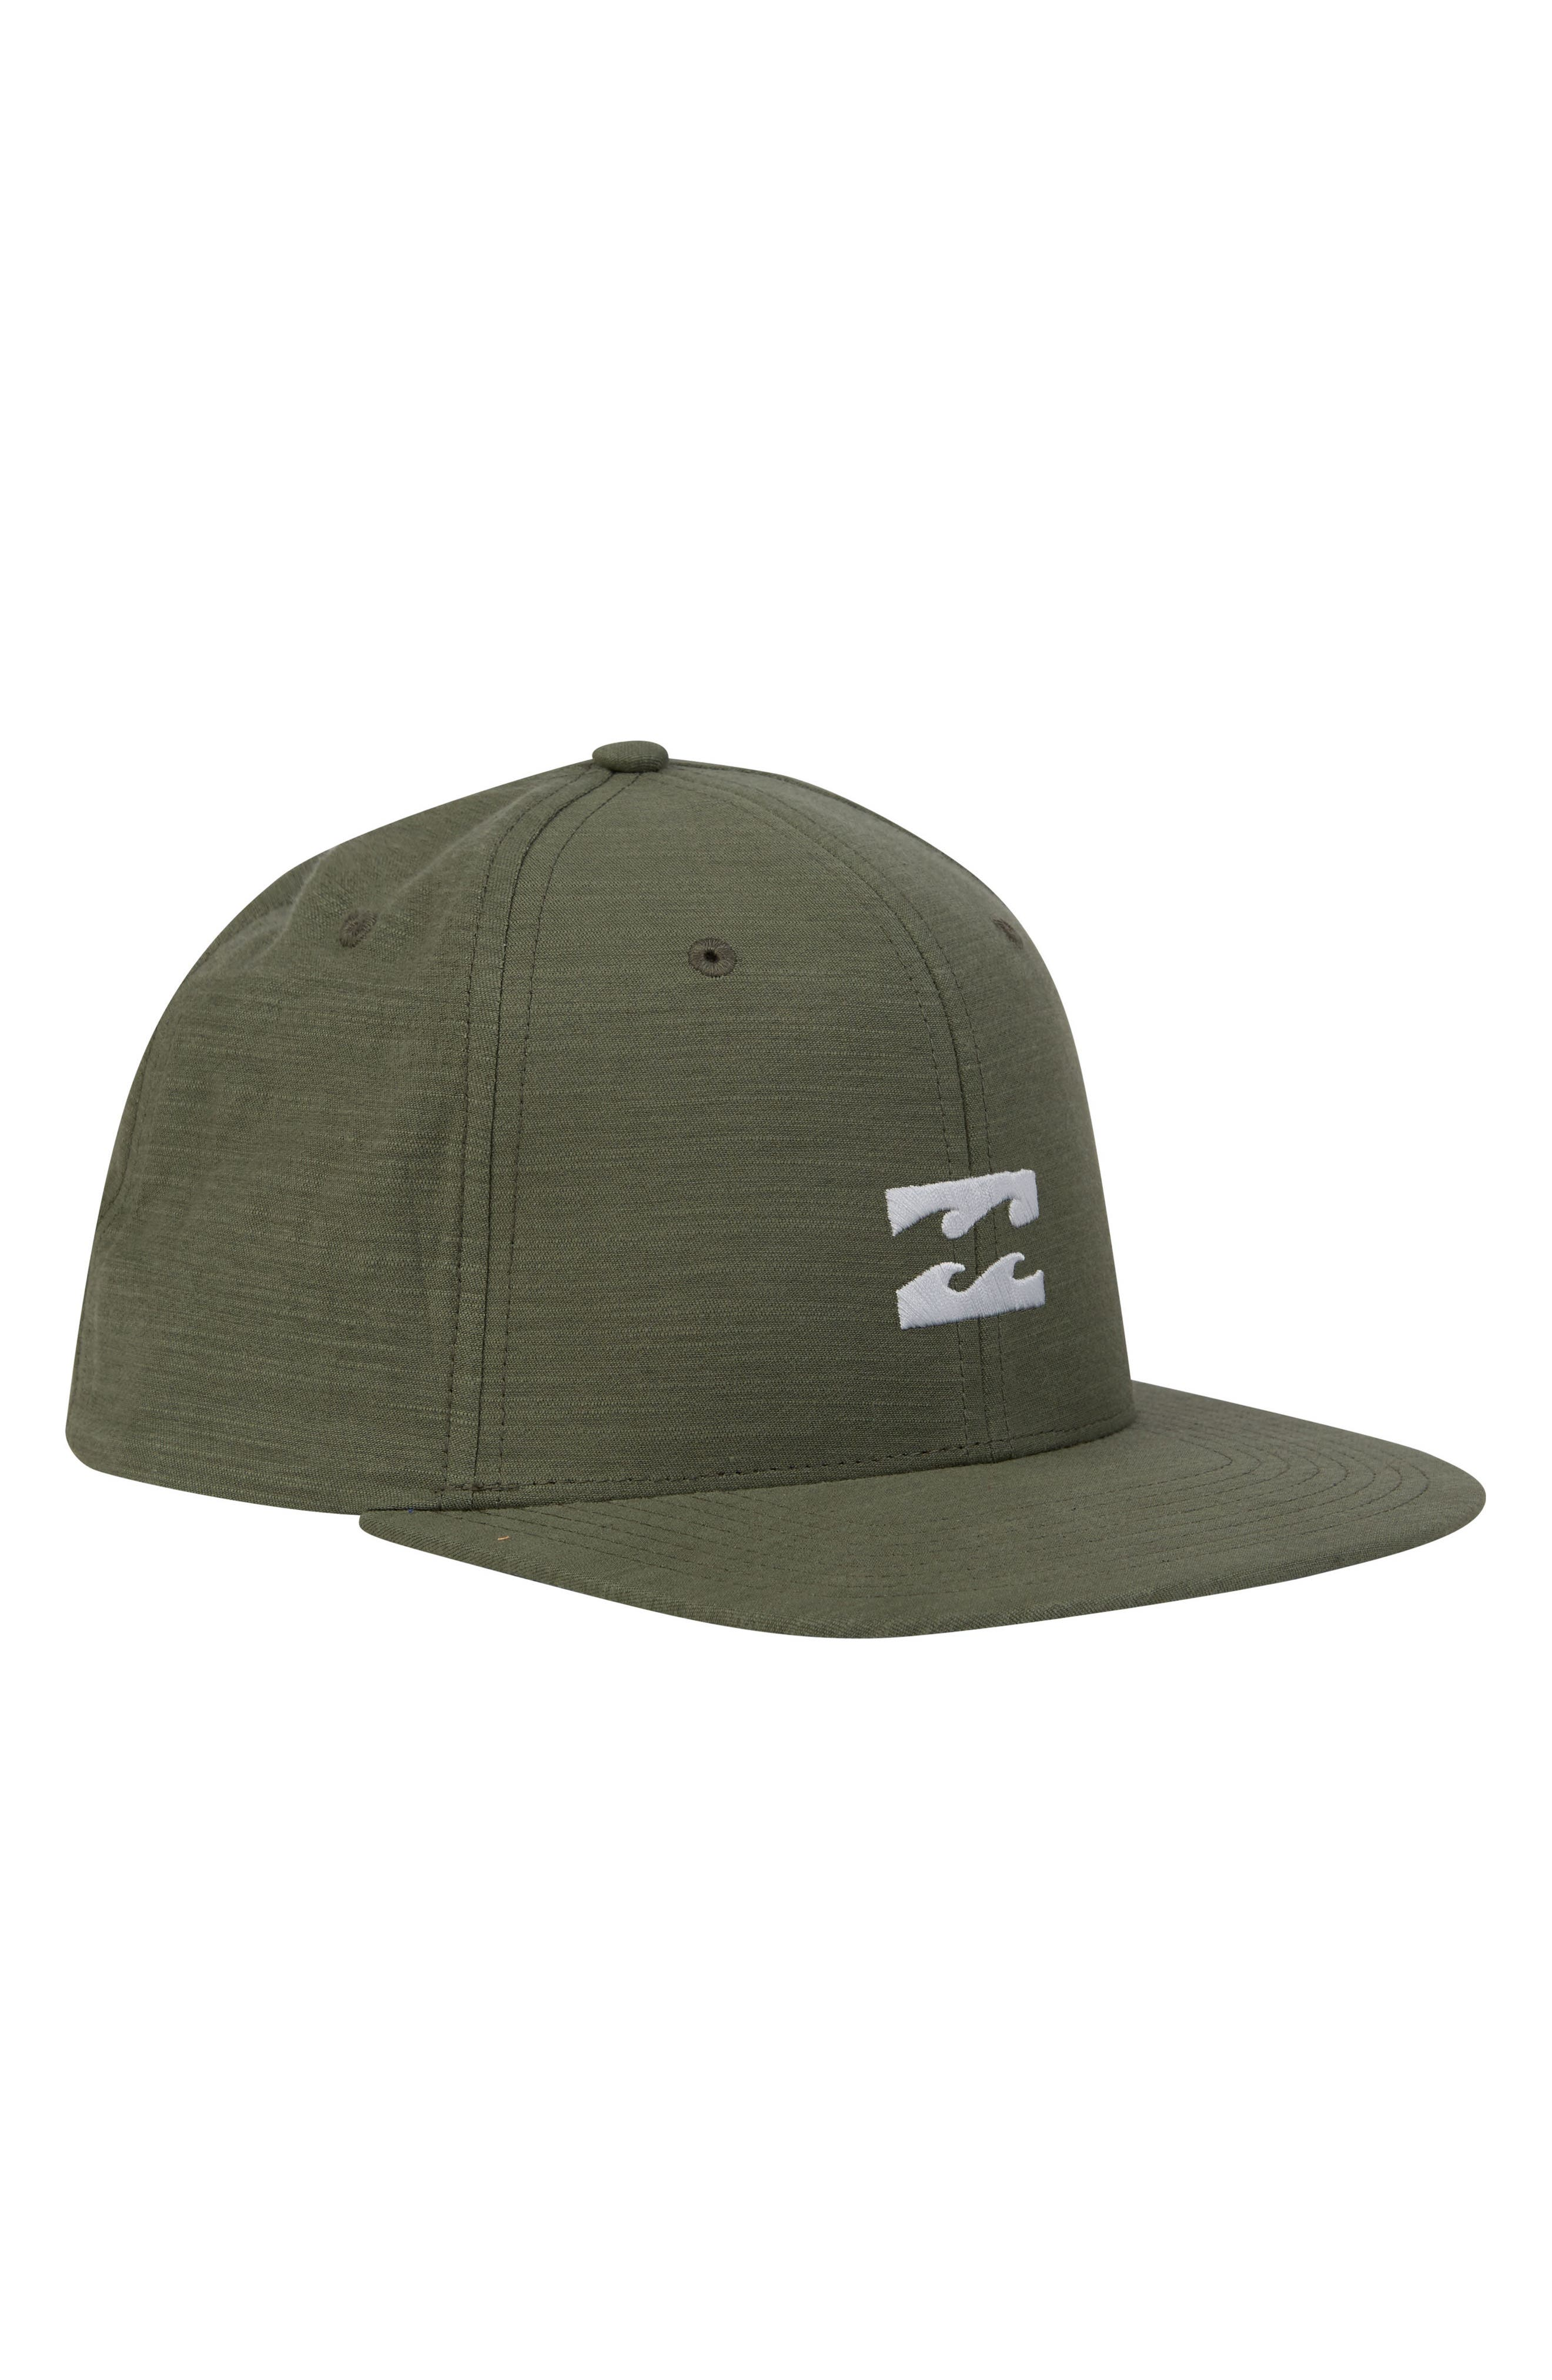 All Day Snapback Cap,                             Main thumbnail 1, color,                             Green Heather